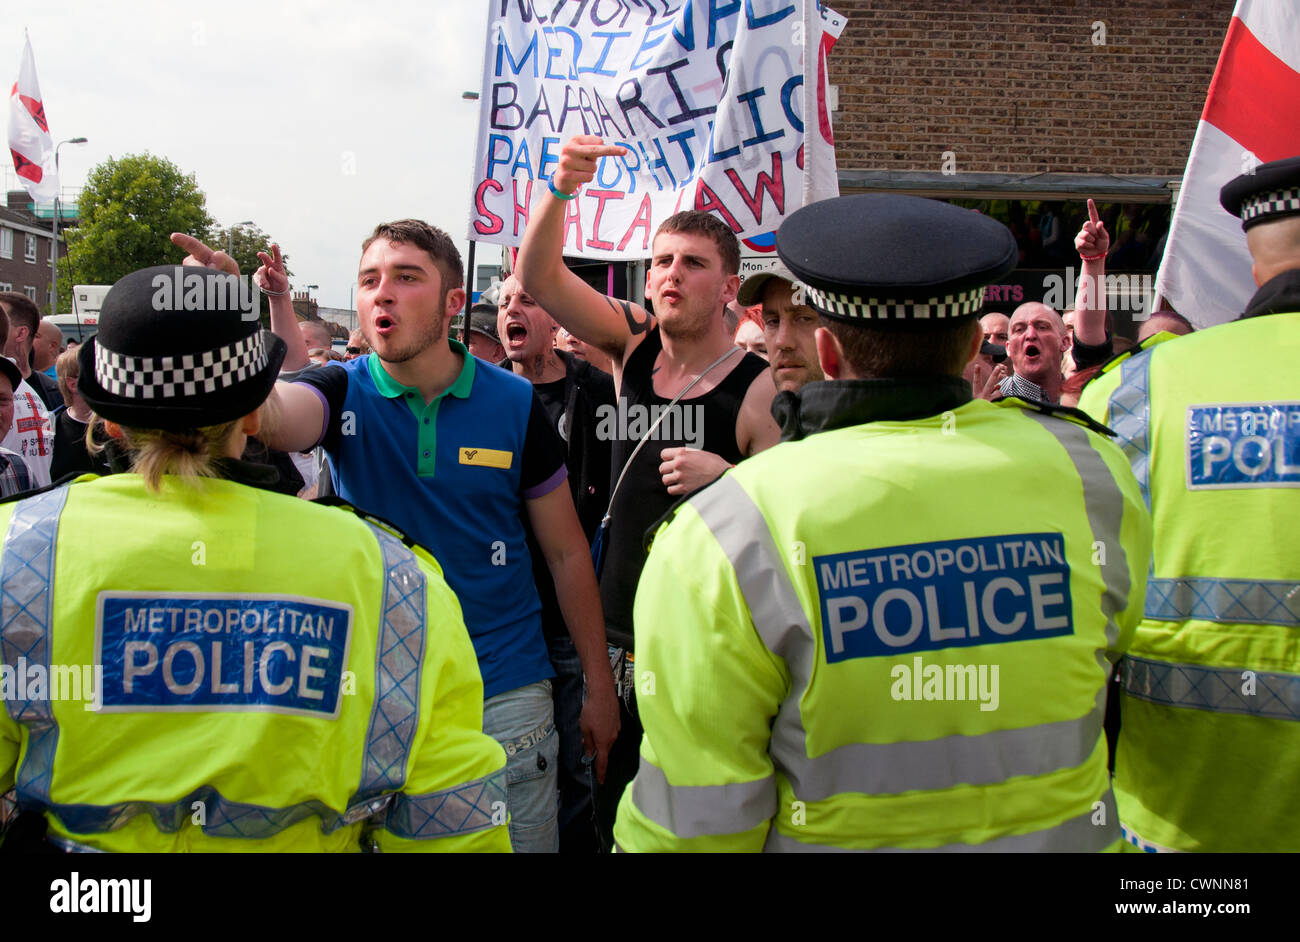 The racist   Islamophobic English Defence League (EDL) march through the center of Walthamstow North London - Stock Image